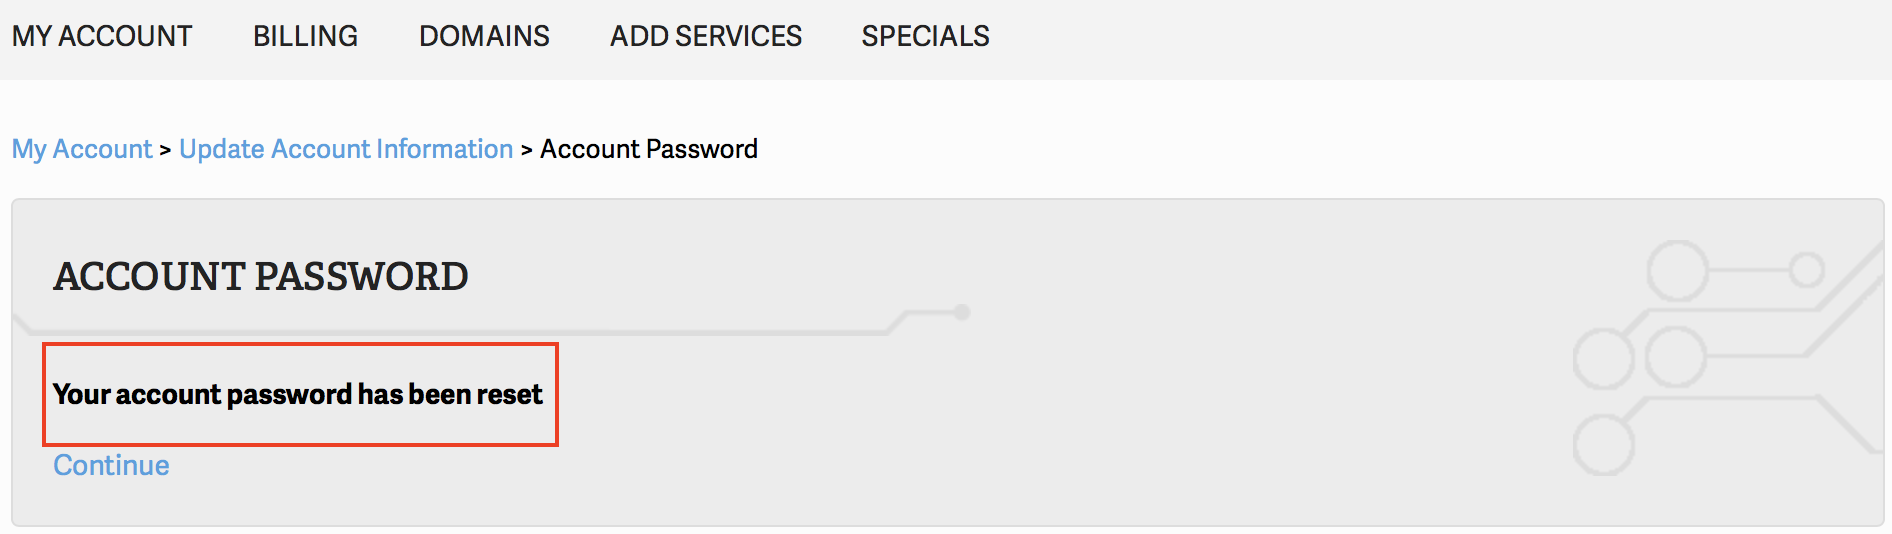 AMP Password reset successful message highlighted.